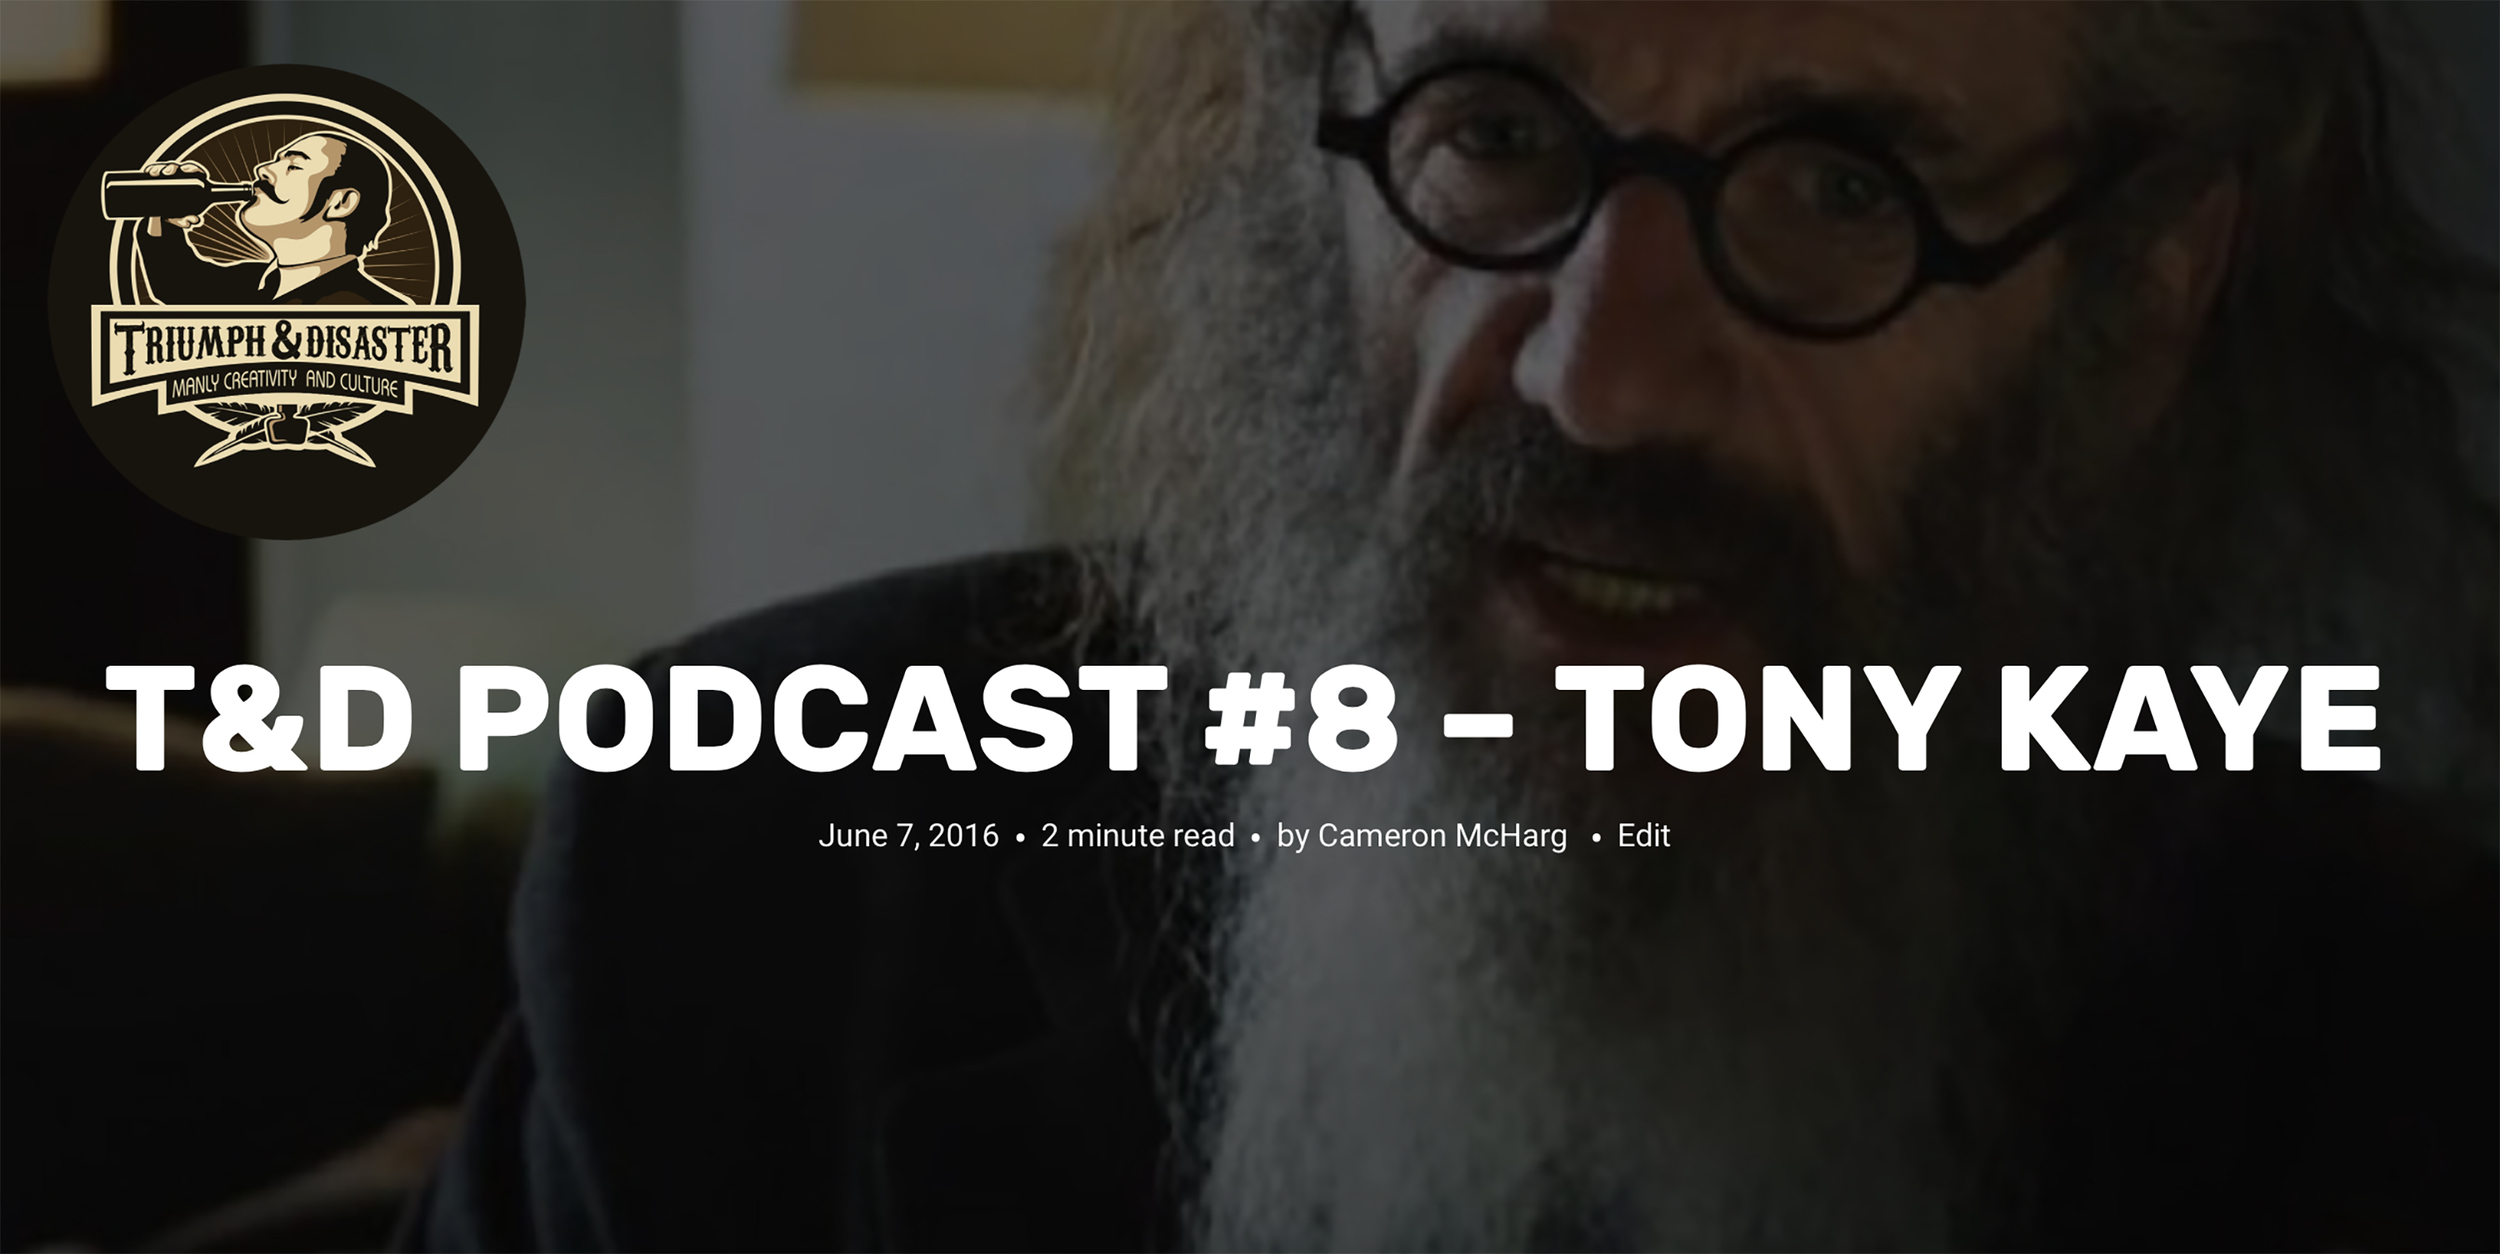 Tony Kaye and I had a conversation in the back alley behind of a bar on Hollywood Blvd, and you can can hear it here on my    Triumph and Disaster    podcast.  We've agreed to do at least a Part 2, and maybe even a much more comprehensive mini-series that may include video as well.  Make sure to subscribe to the   Triumph and Disaster Blog   and   subscribe on iTunes   so you don't miss out!